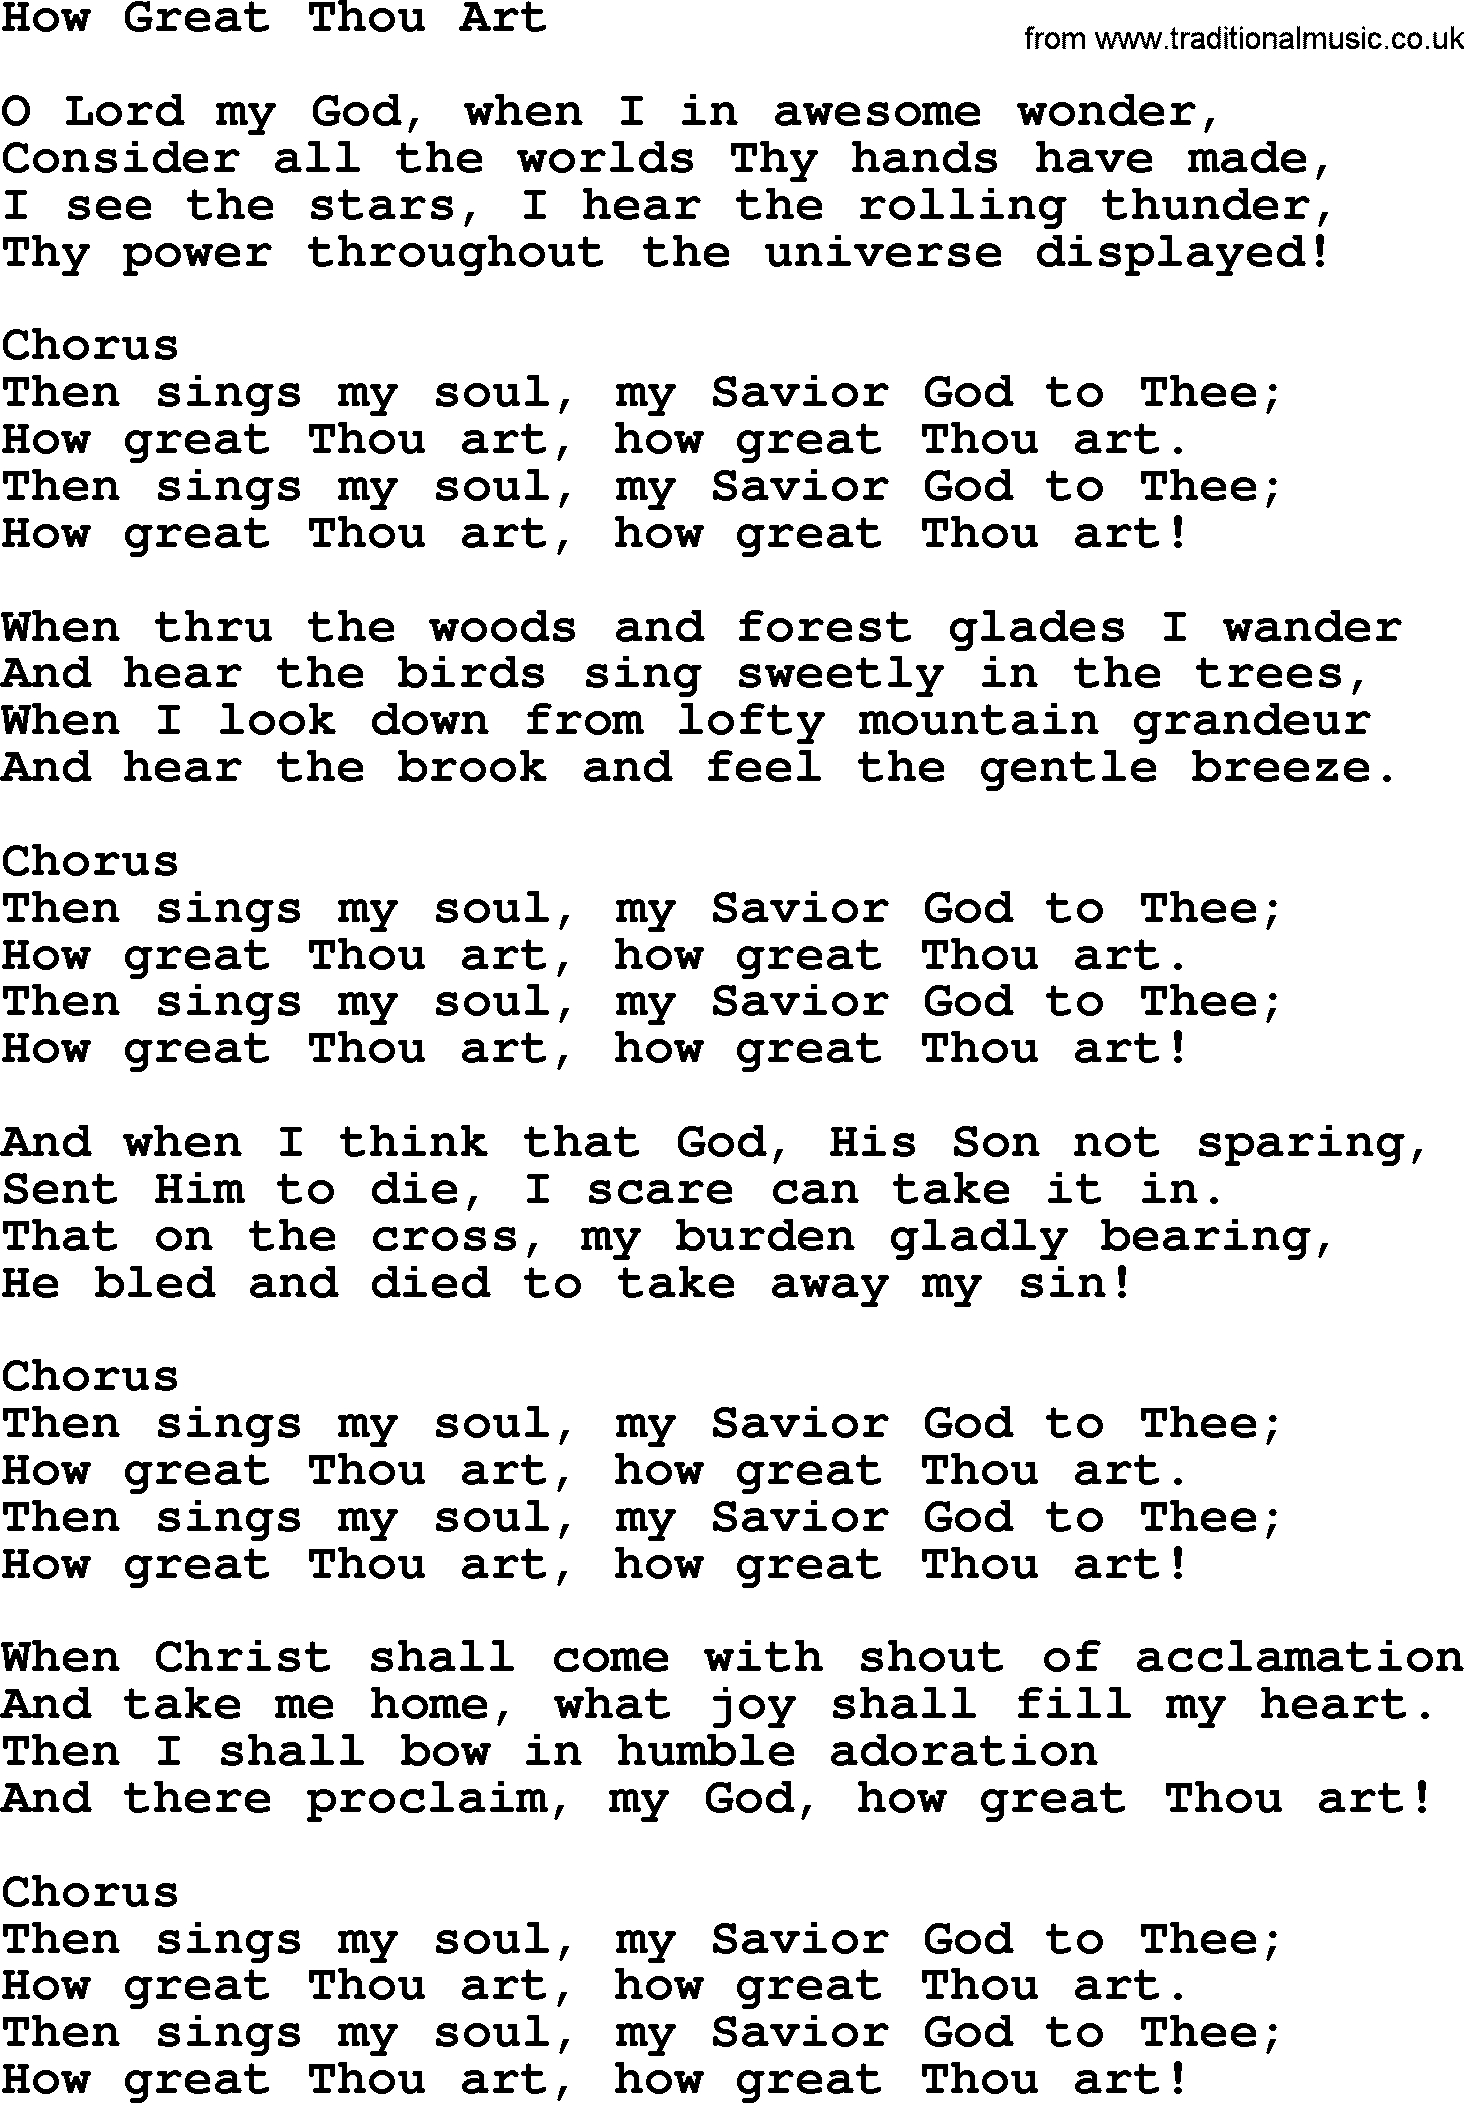 How Great Thou Art Chords Baptist Hymnal Christian Song How Great Thou Art Lyrics With Pdf